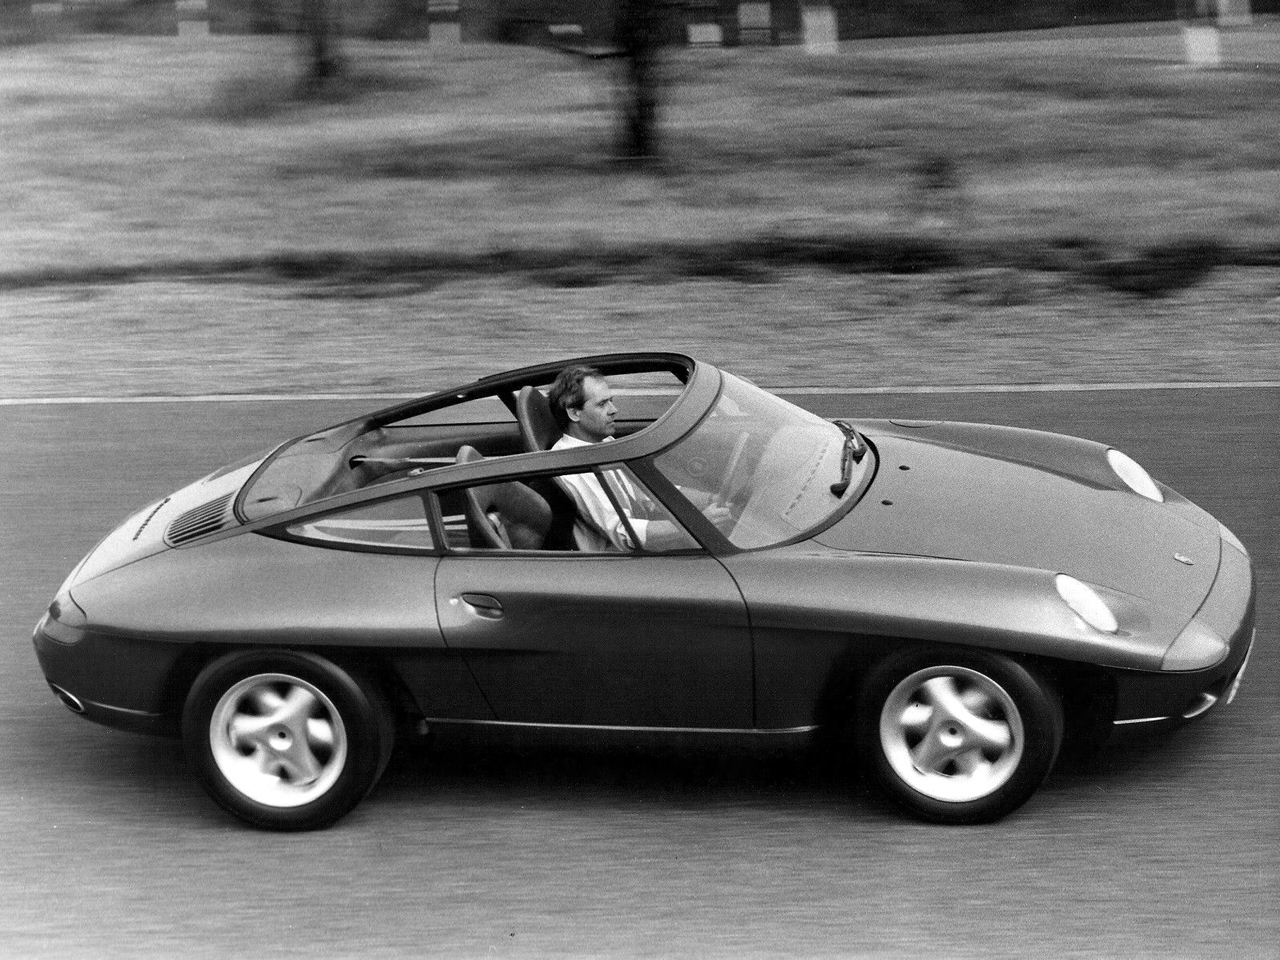 A Look At The 1989 Porsche Panamericana Concept Ran When